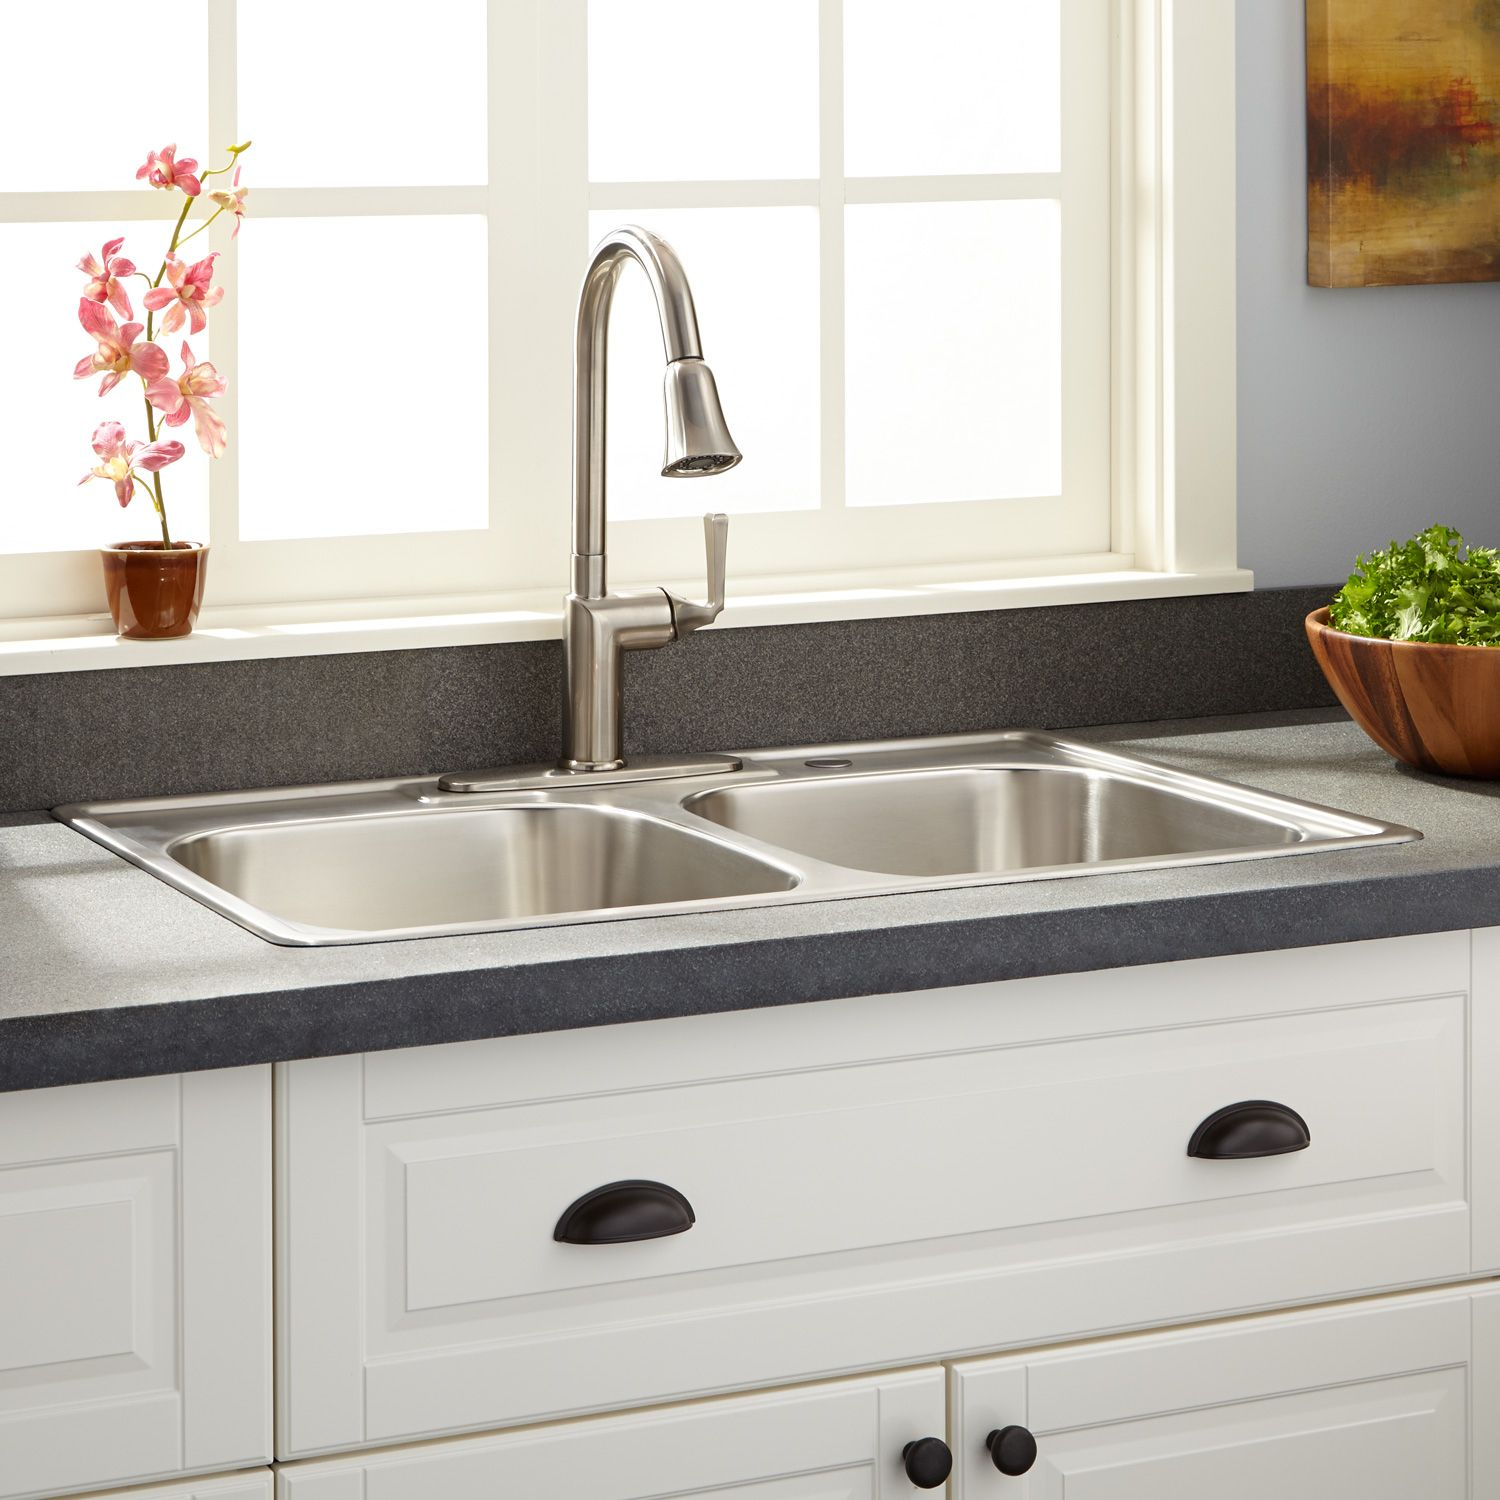 Drop in stainless steel kitchen sink kitchen pantry storage ideas check more at http www entropiads com drop in stainless steel kitchen sink